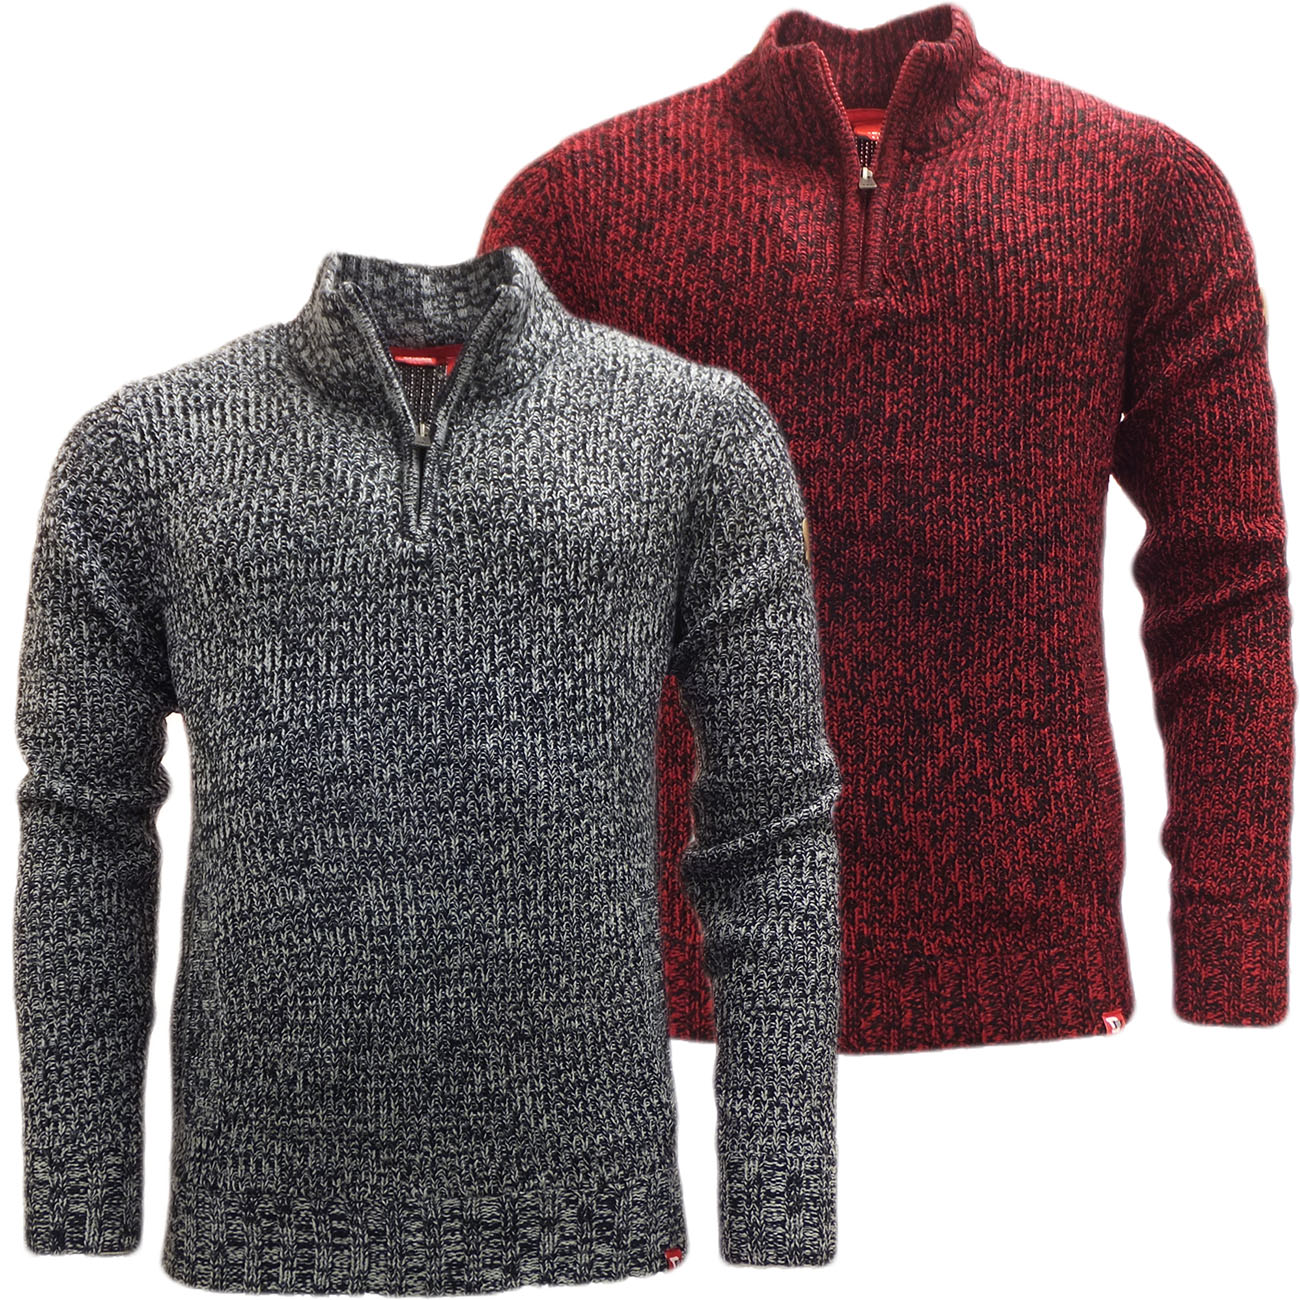 Shop from the world's largest selection and best deals for Winter Jumper. Free delivery and free returns on eBay Plus items.